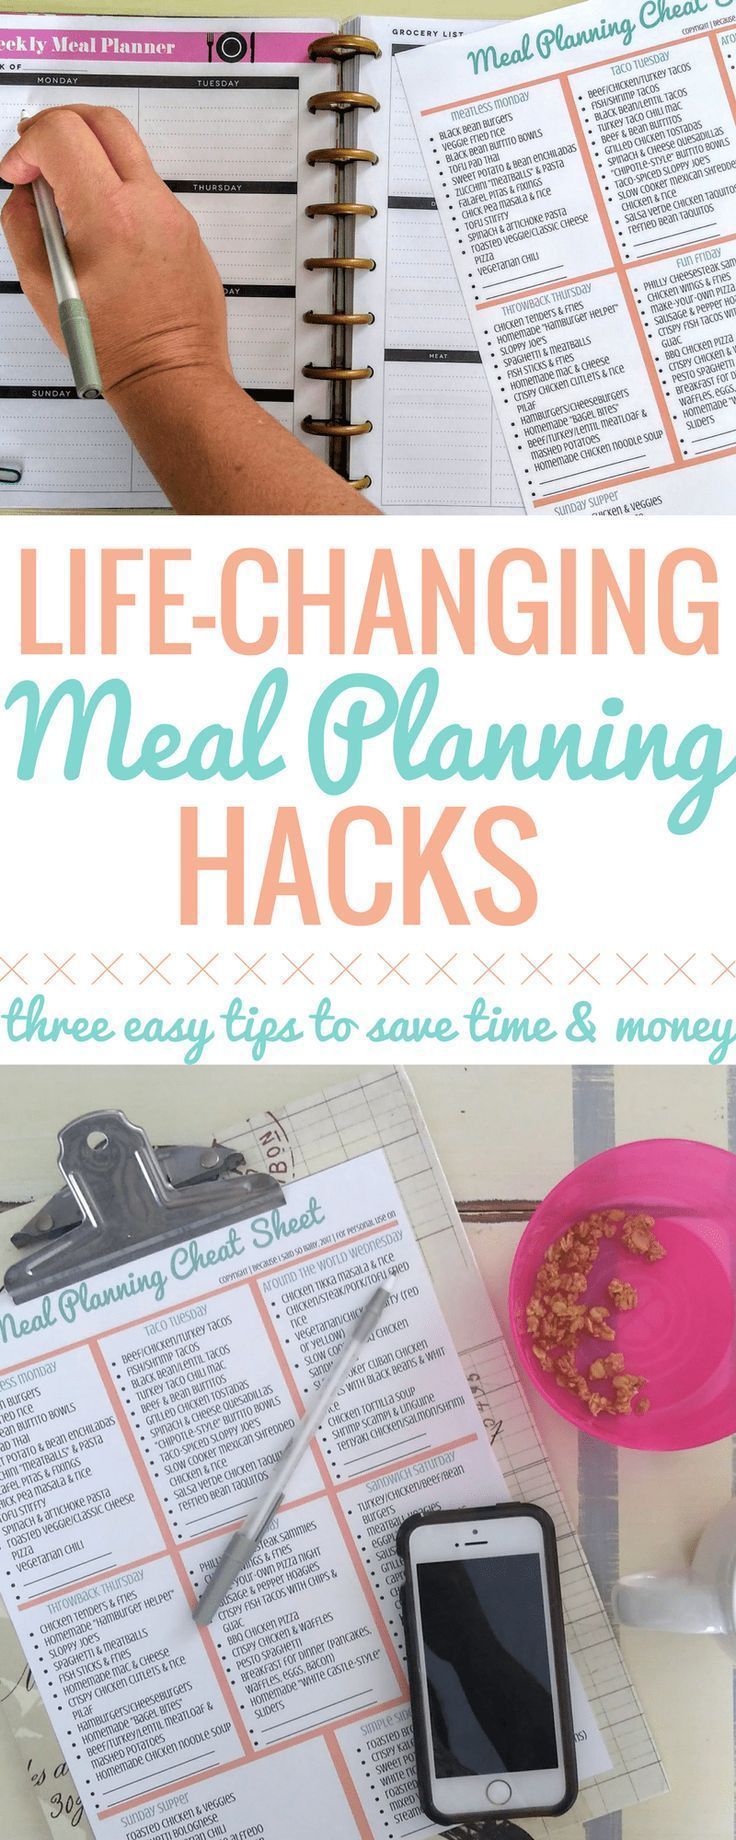 3 Life-Changing Meal Planning Hacks images